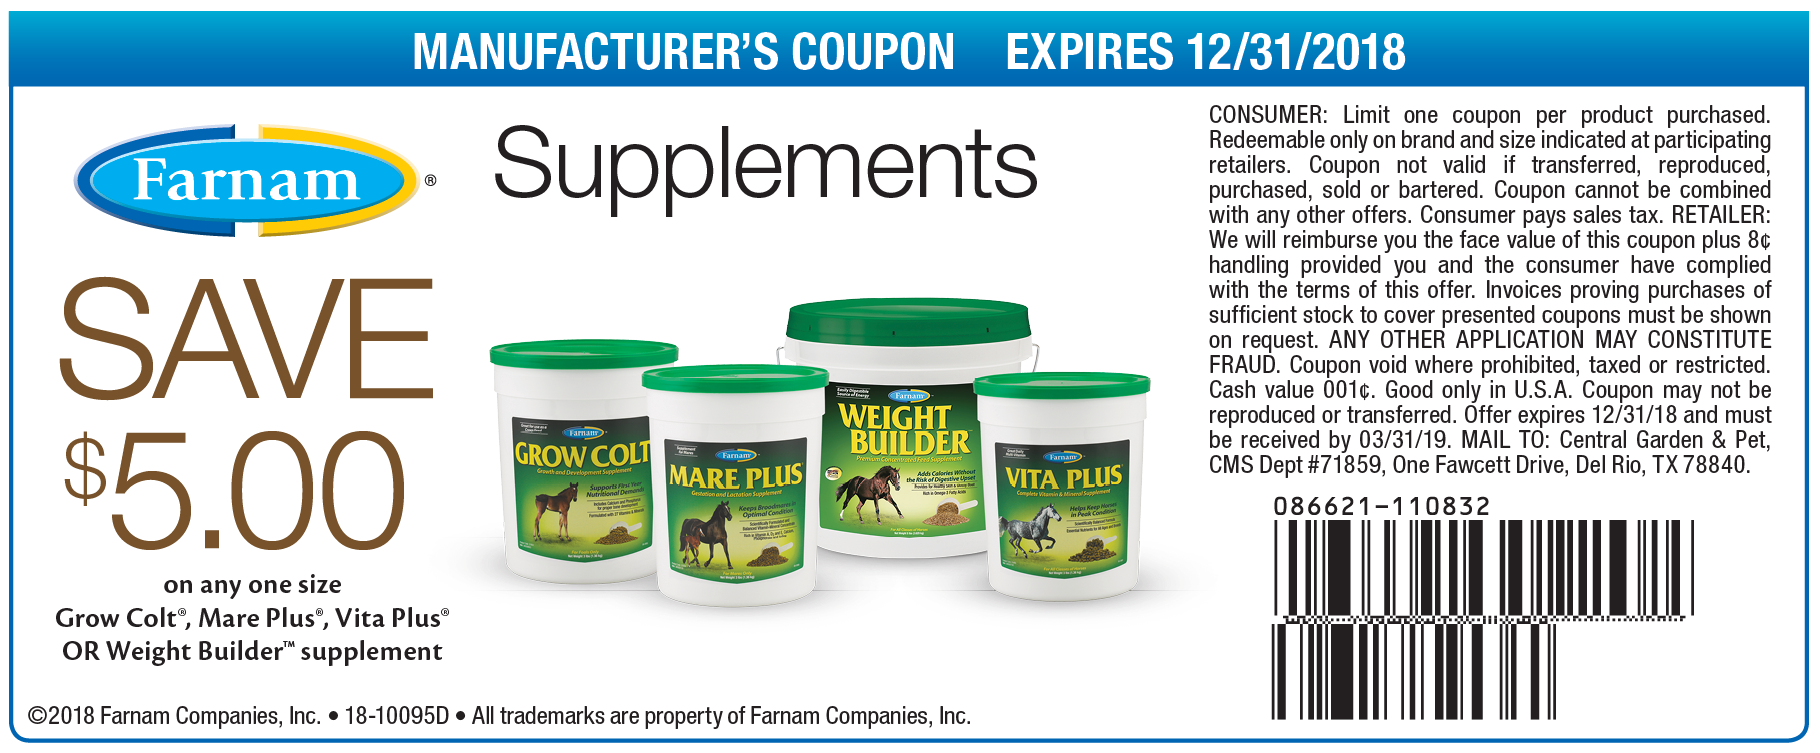 18-10095D_FM_110832_GrowColt_MarePlus_VitaPlus_WeightBuilder_$5_WebCoupon2.png